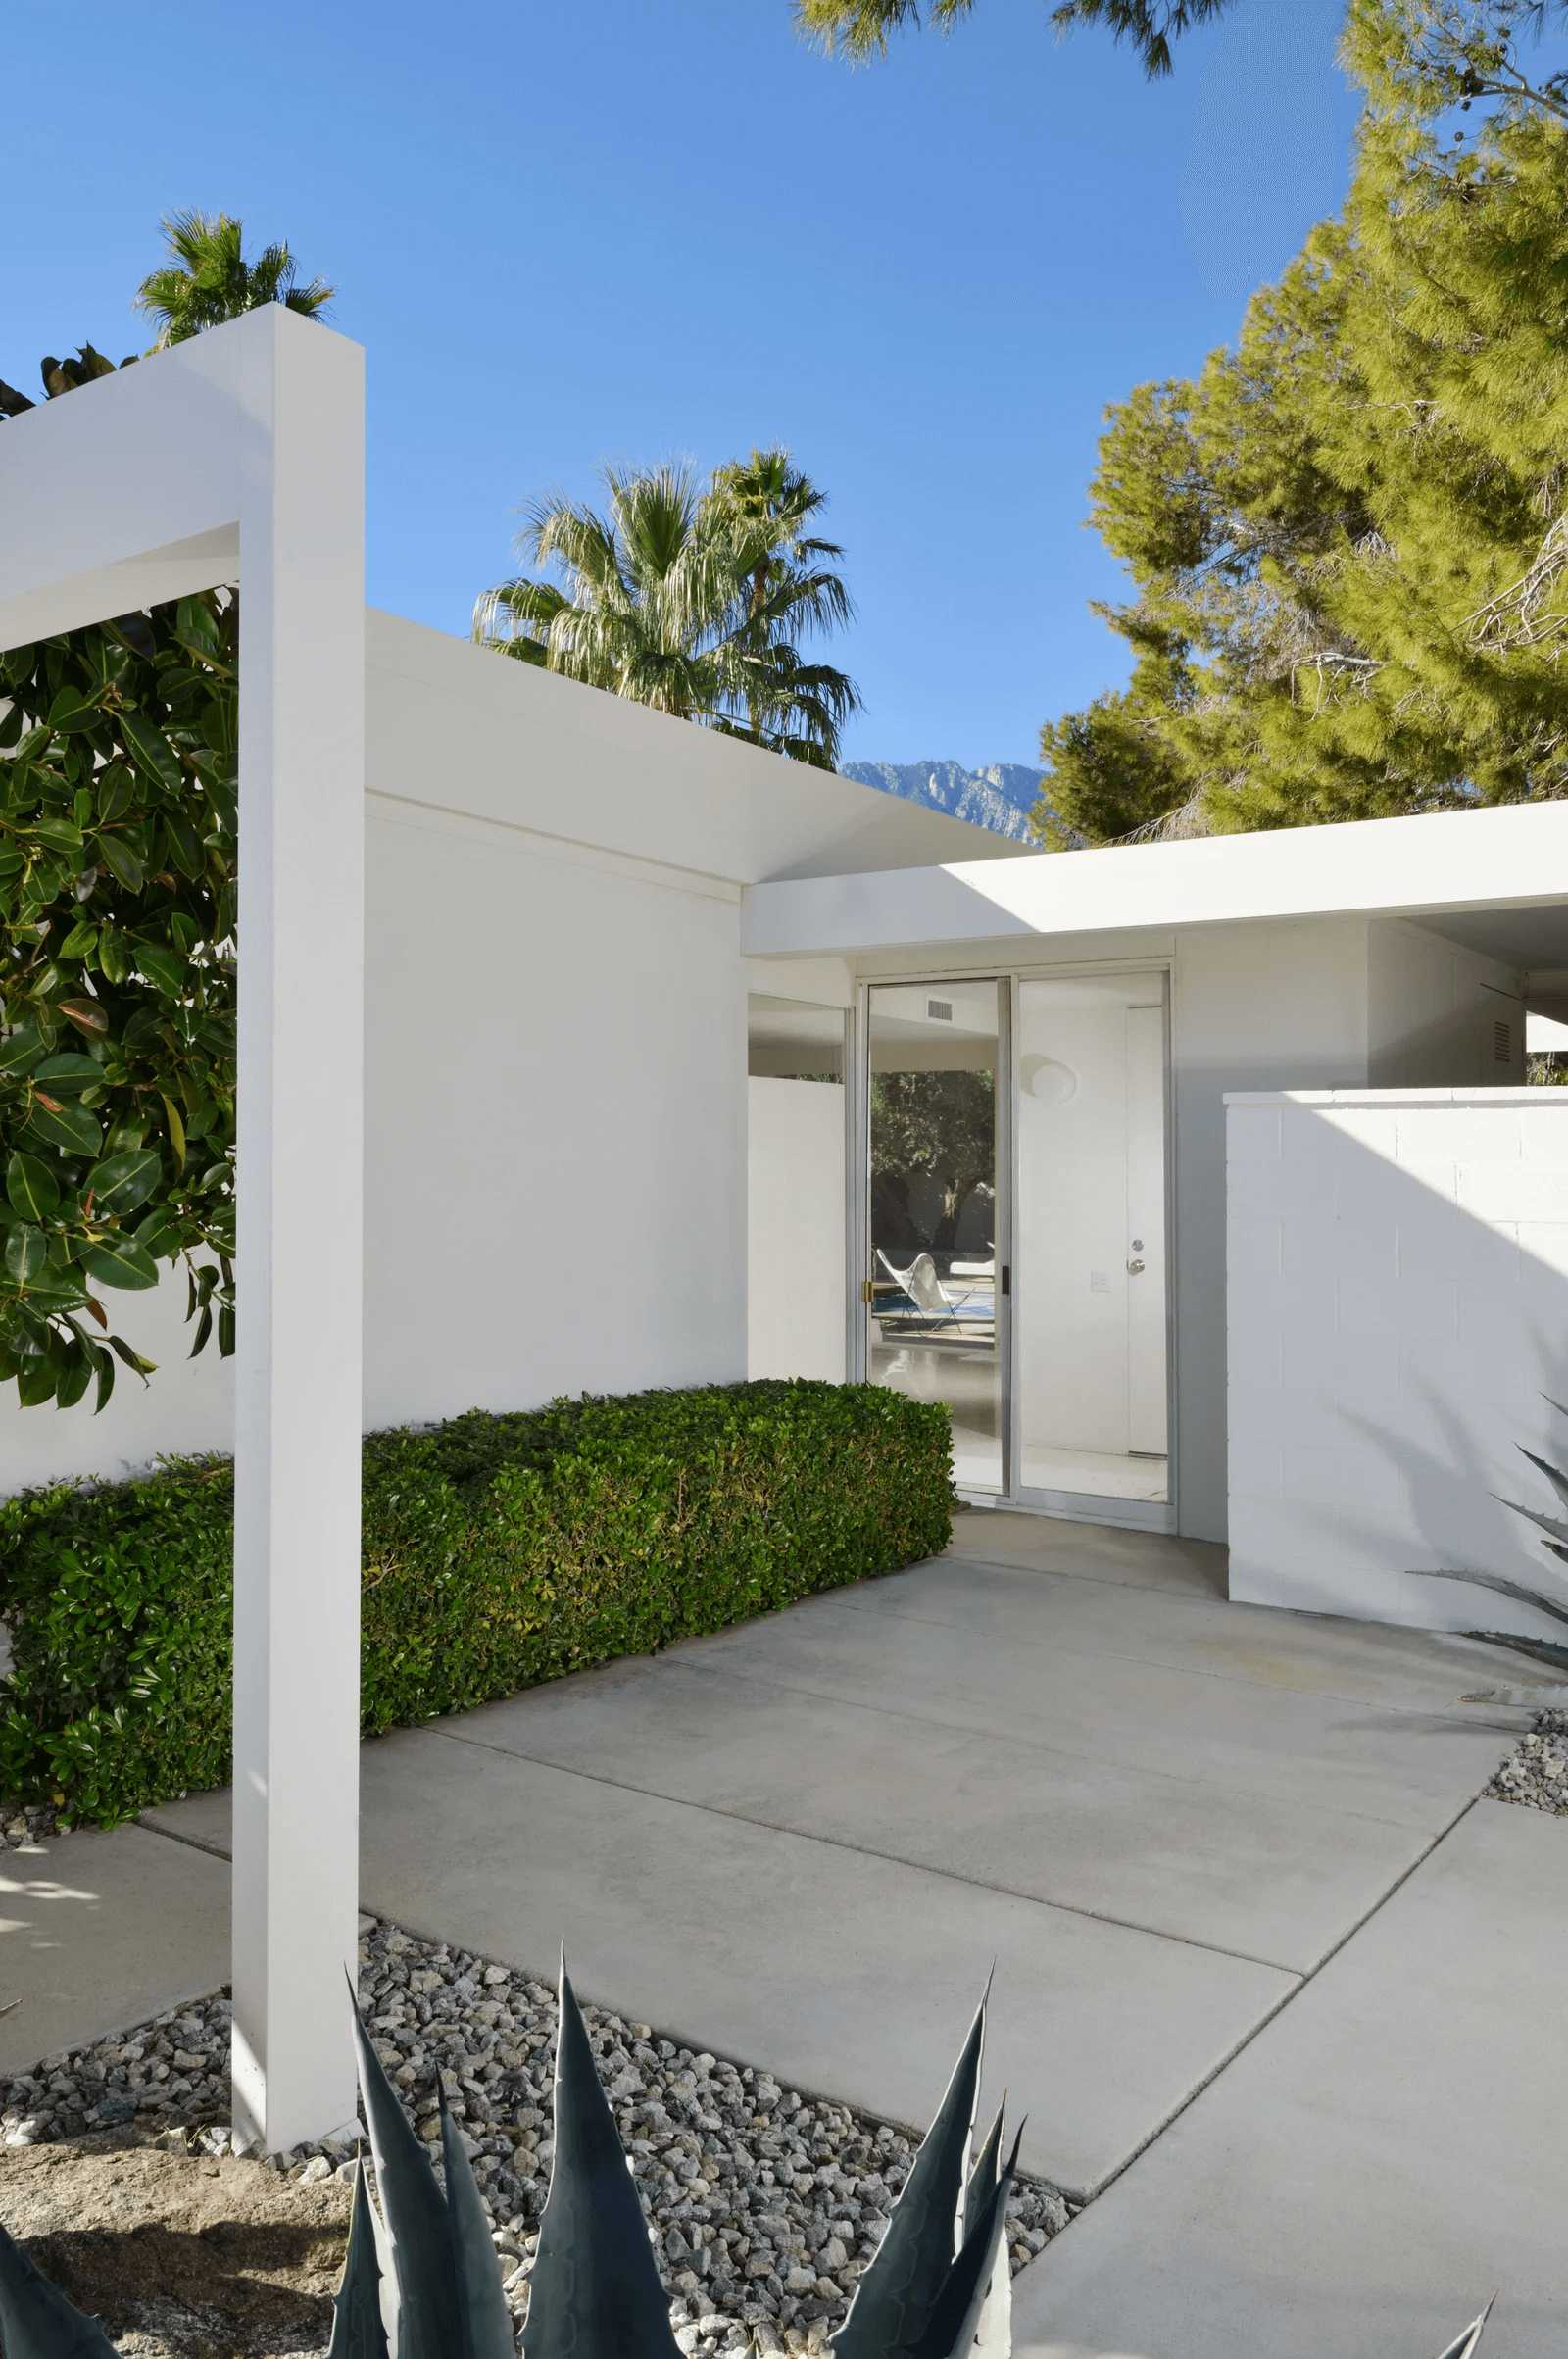 this-is-this-is-a-Retro-Modernism-Steel-House-and-a-view-from-outside-showing-the-sliding-glass-doors-and-view-of-the-swimming-pool